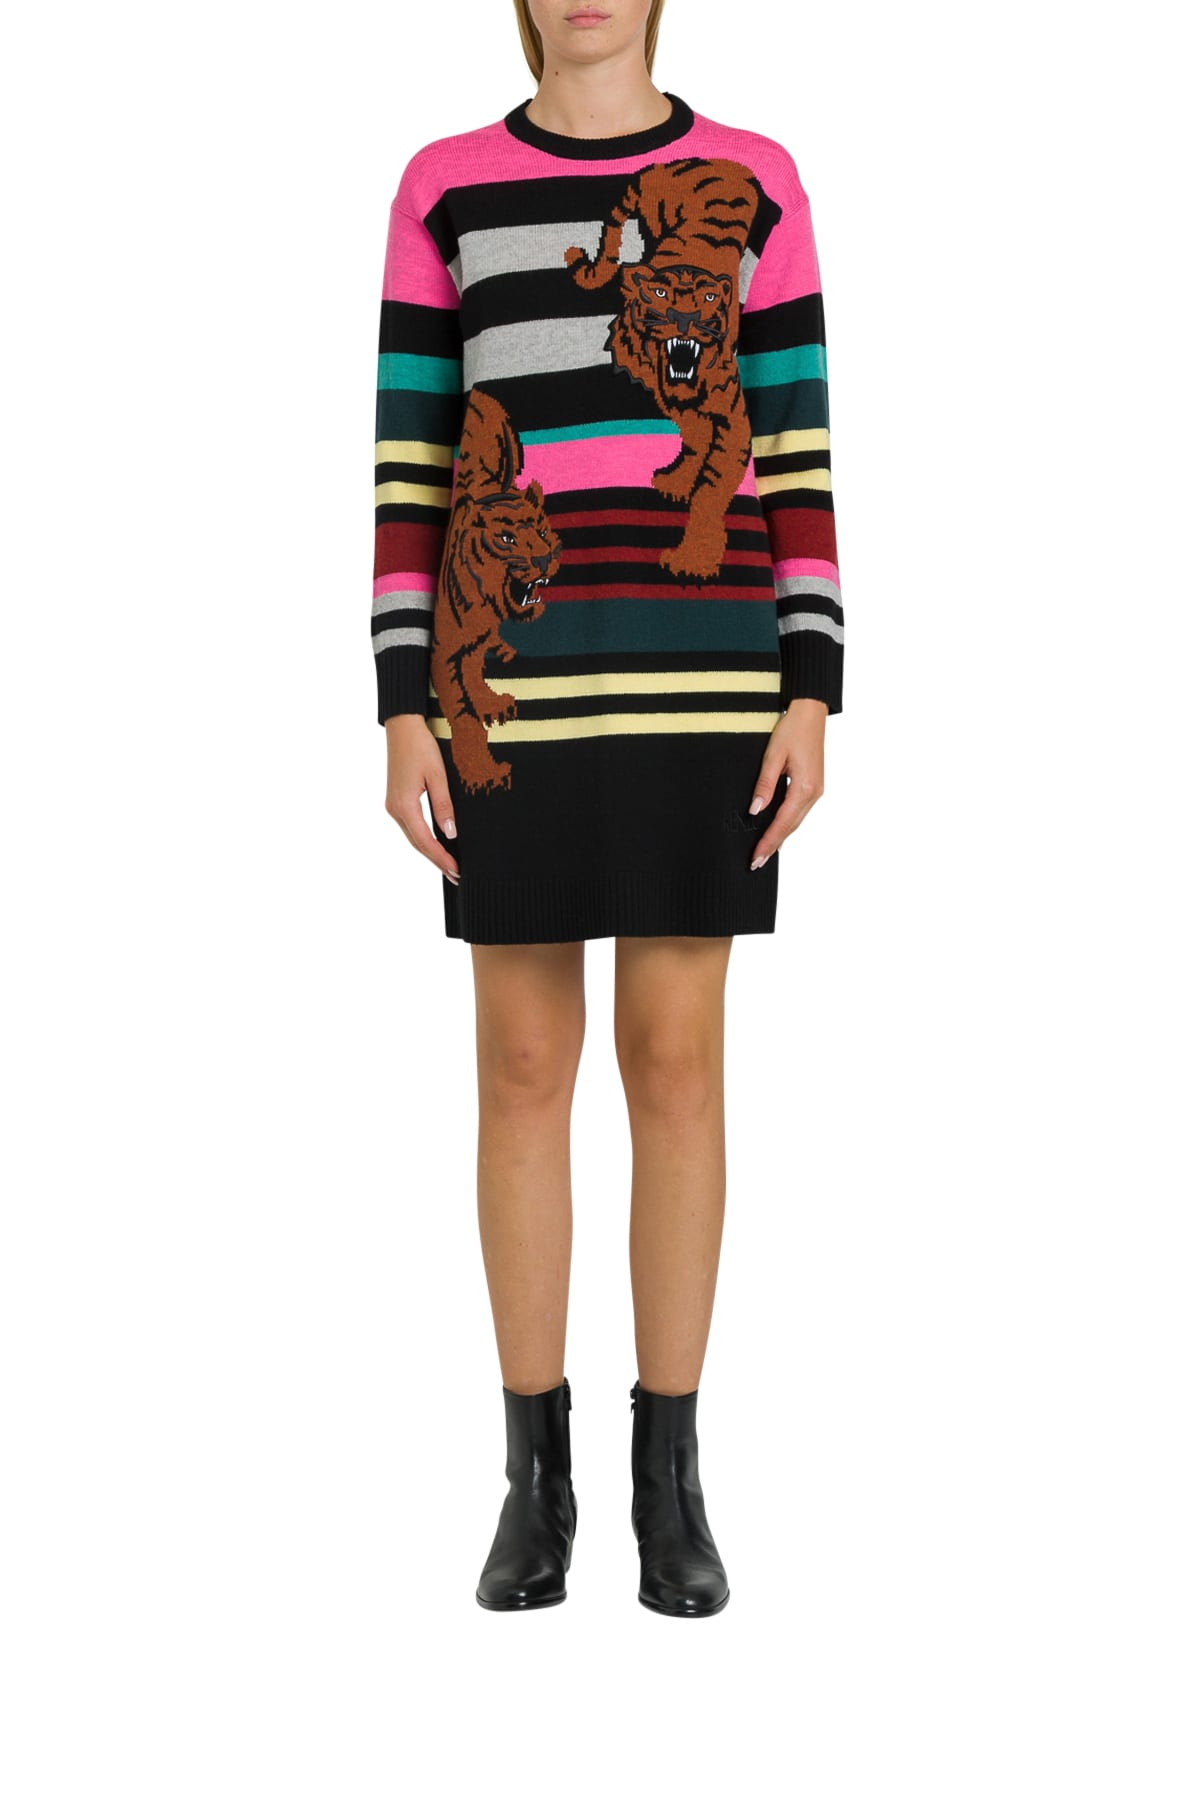 Kenzo Wool Double Tiger Jumper Dress